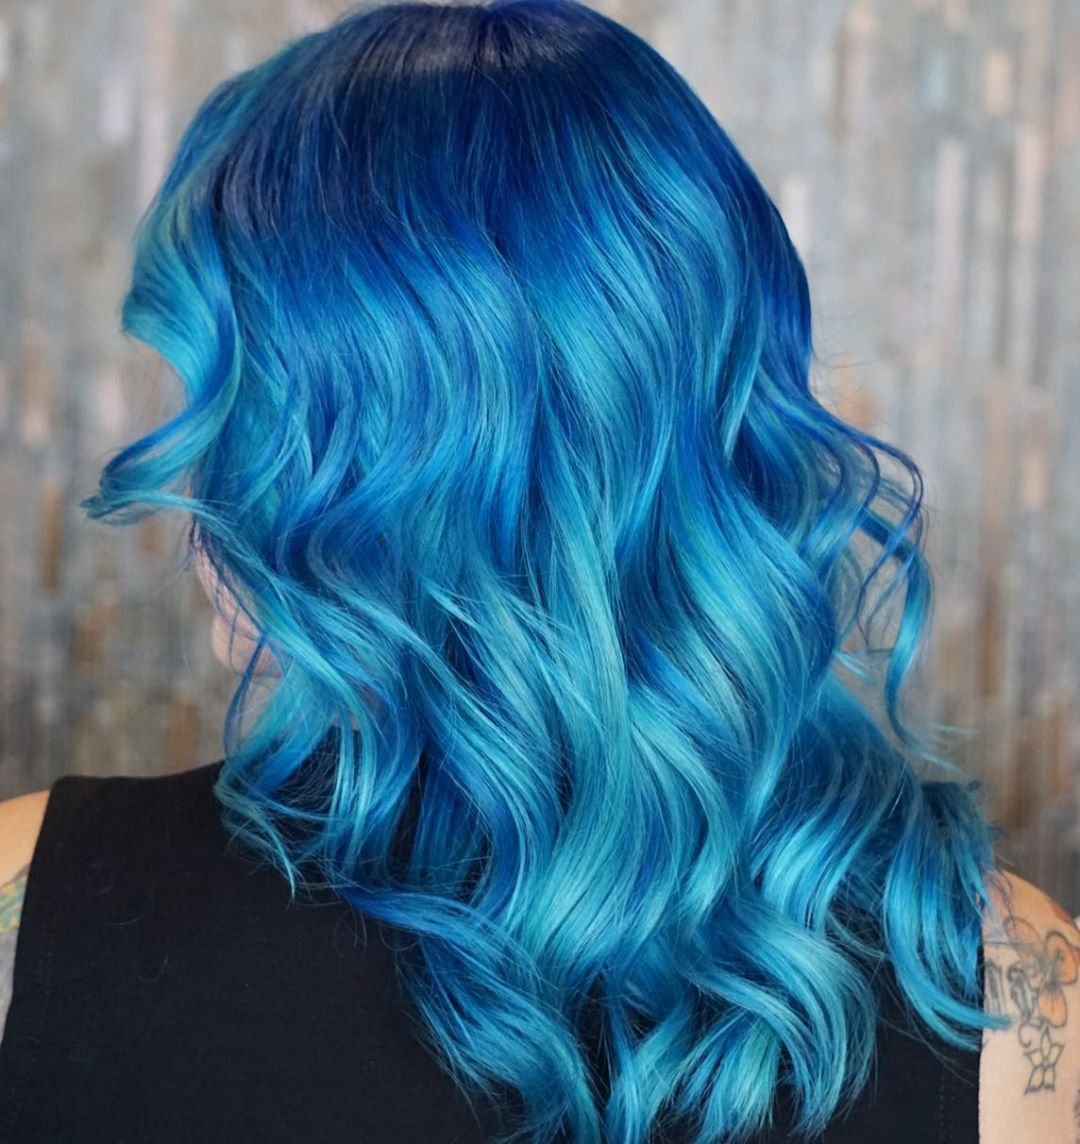 Electric Blue Hair Styles – An Informal Guide